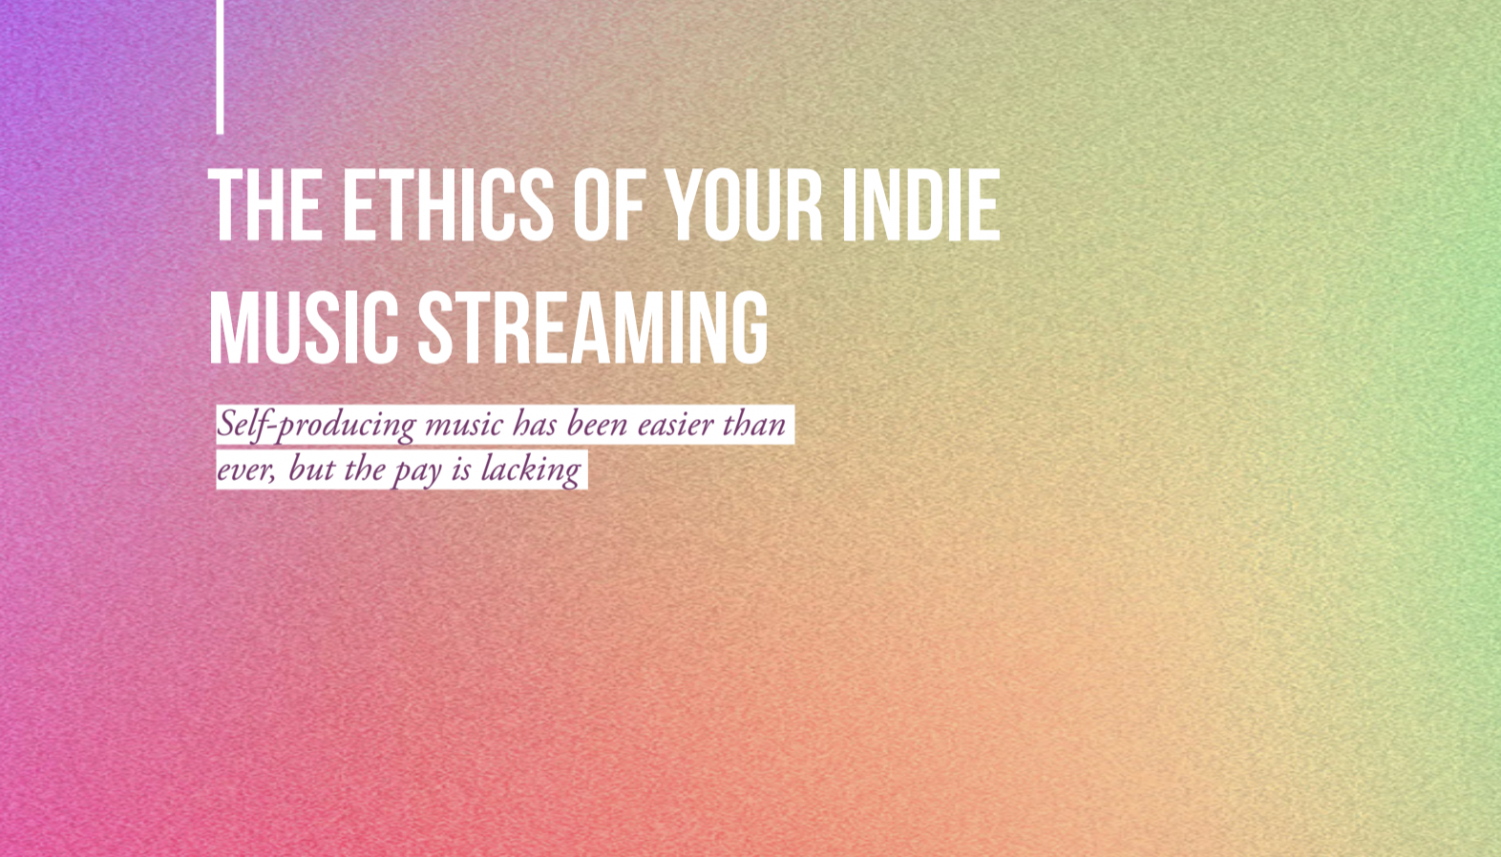 Opting to self-produce music is incredibly easy. But making a career out of it is harder than ever.